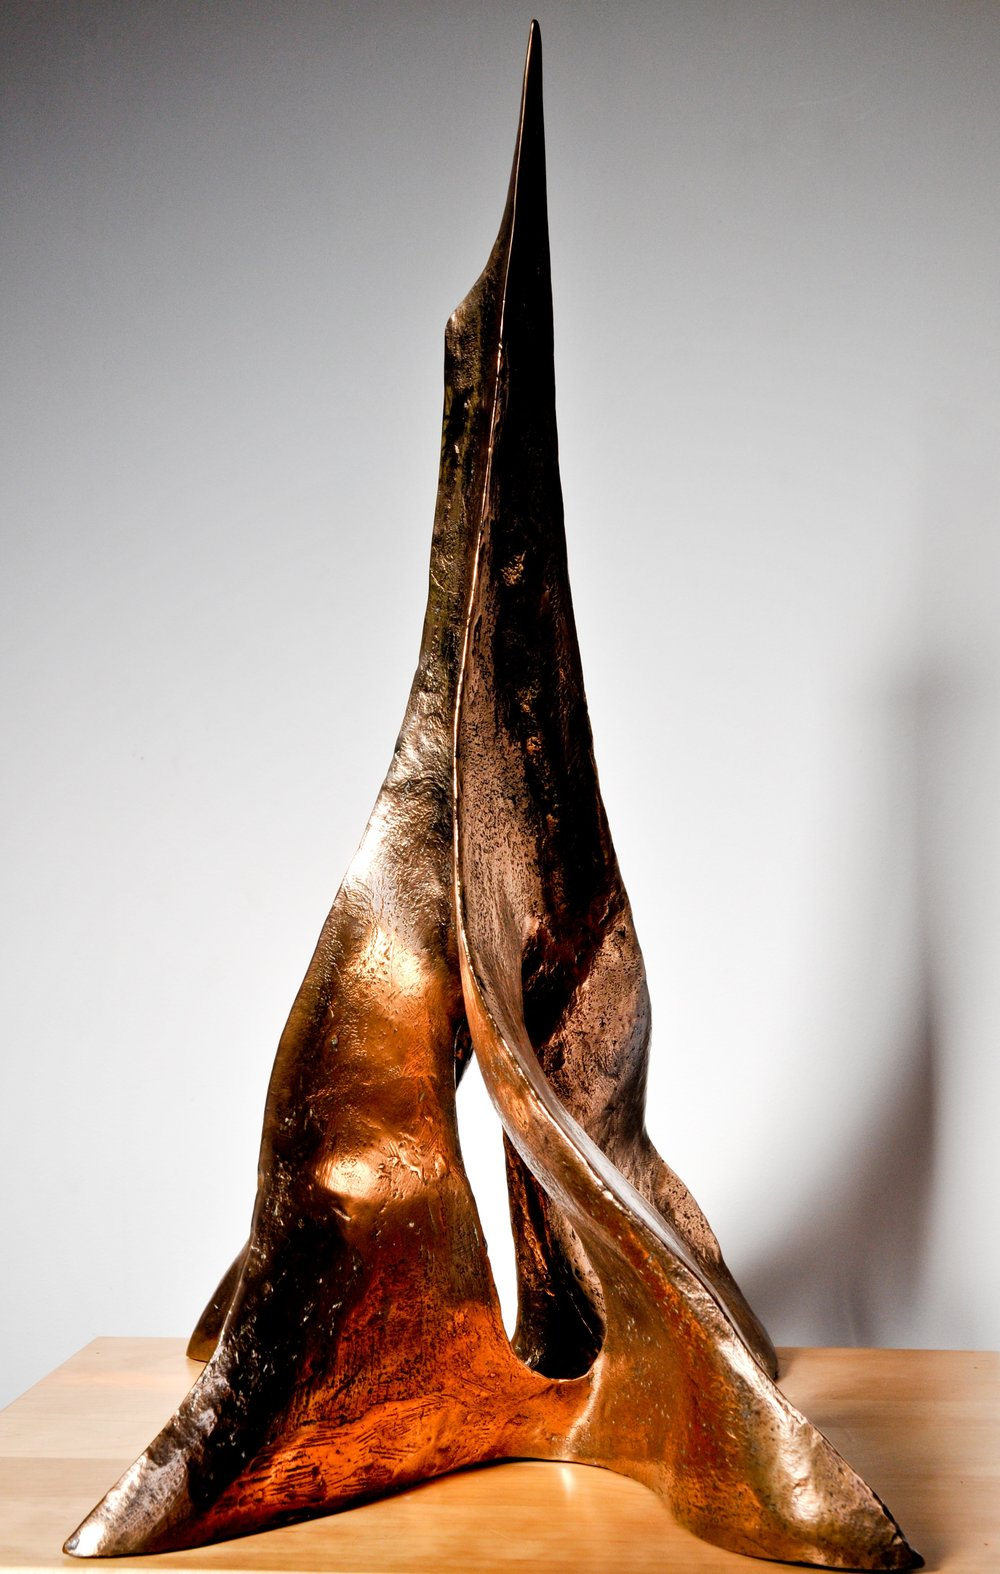 Energy in Harmony     60.52.39 cm     bronze